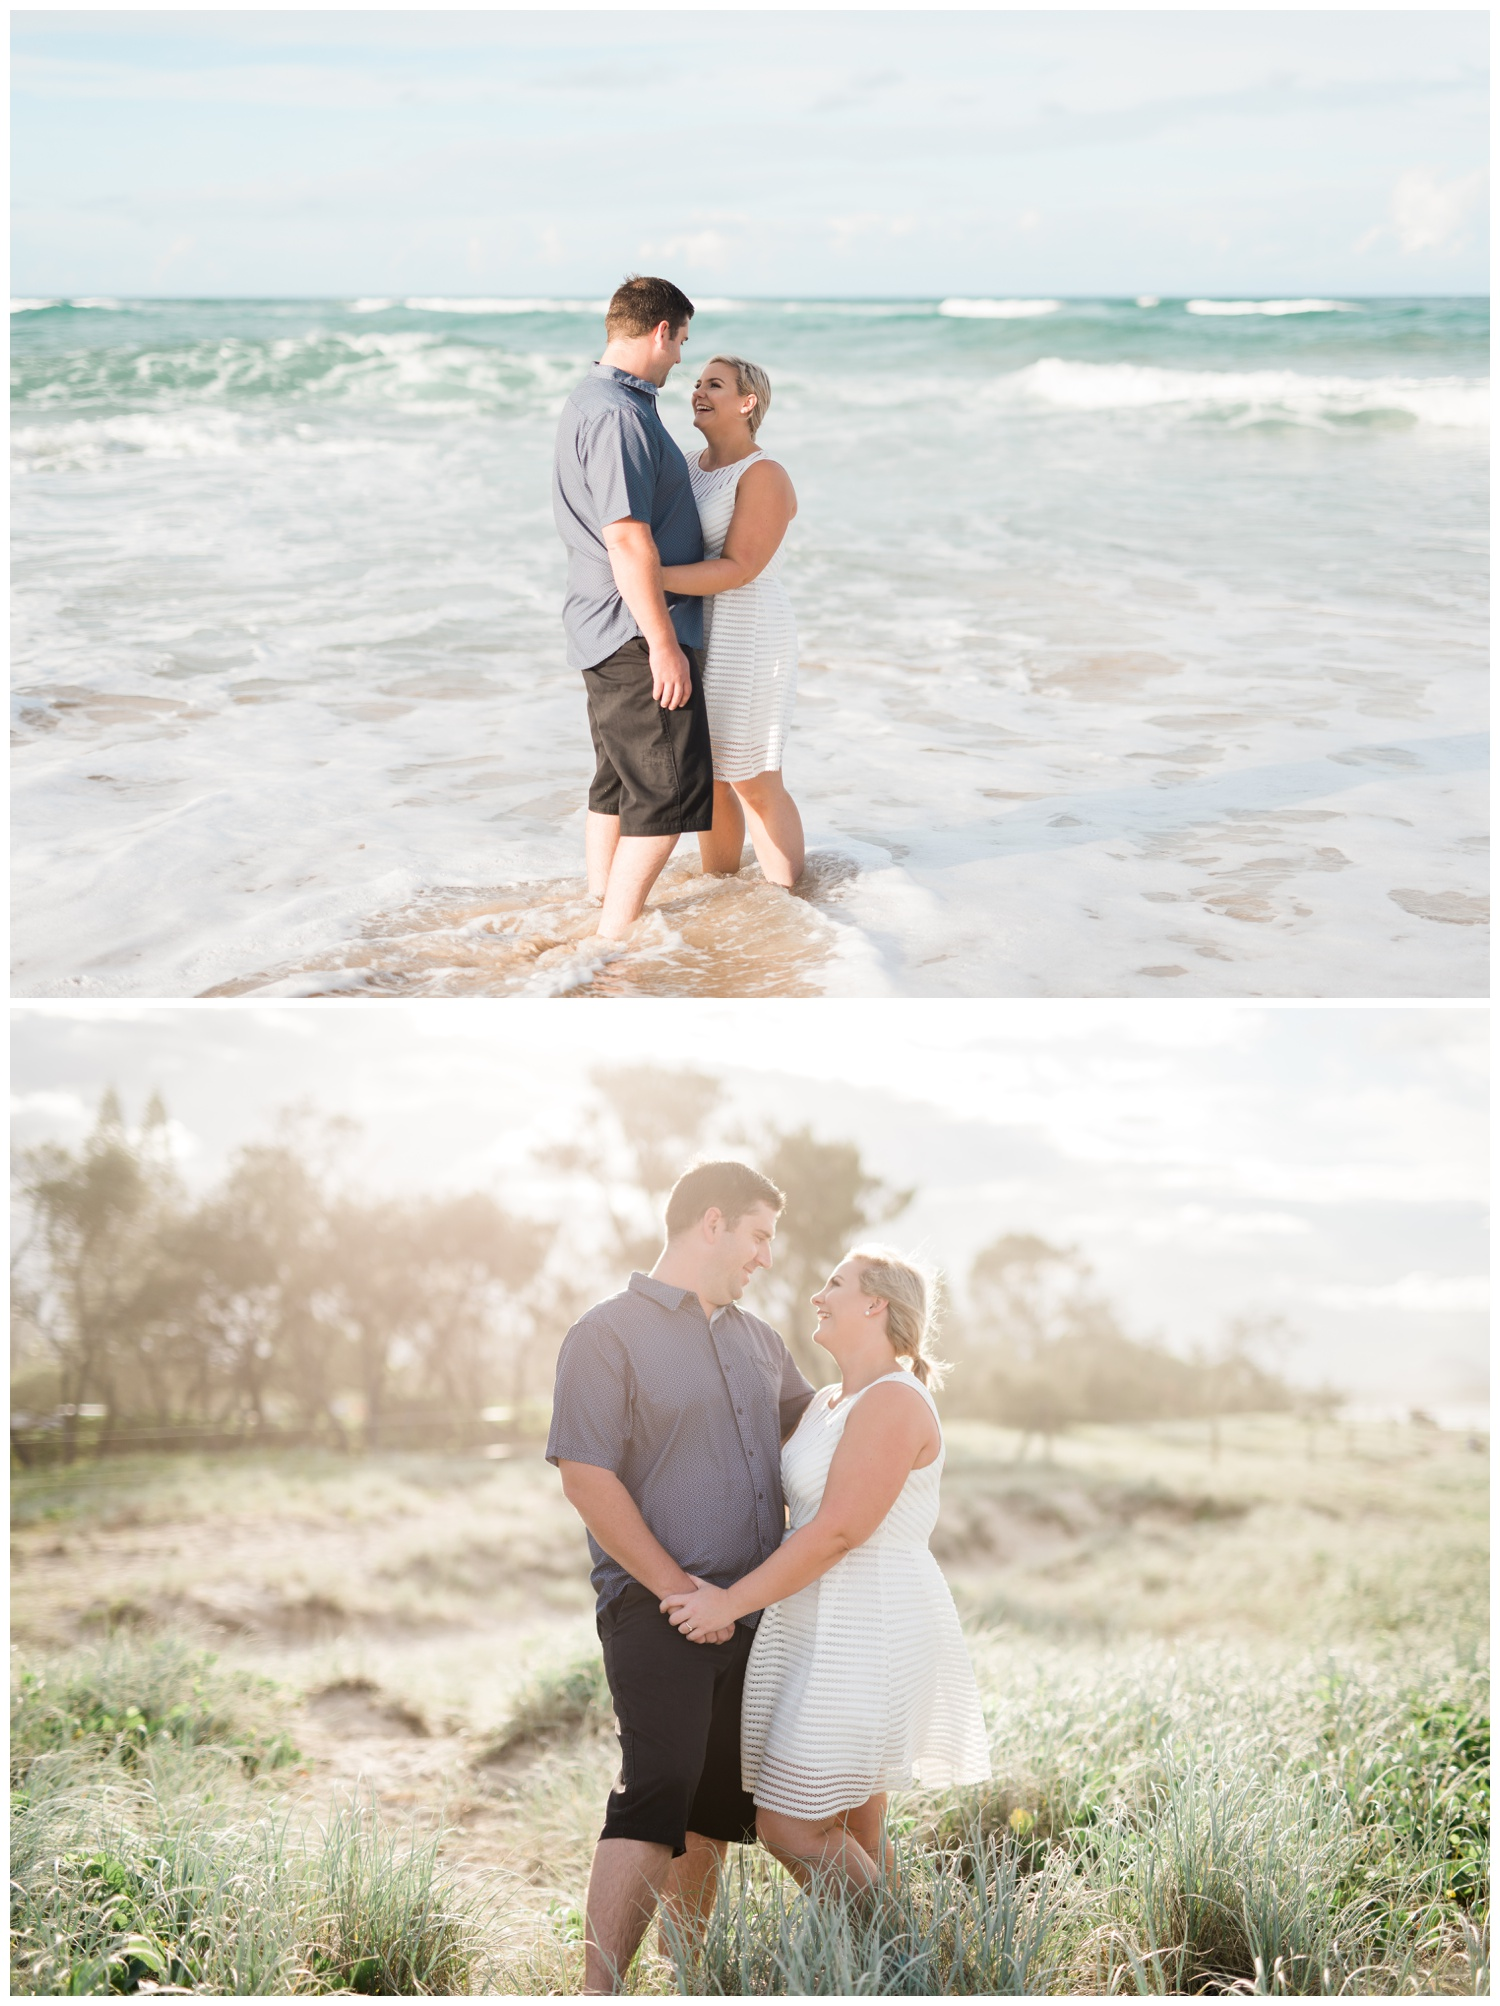 Cotton-Tree-Beach-Engagement-Shoot-Sunshine-Coast-3.jpg